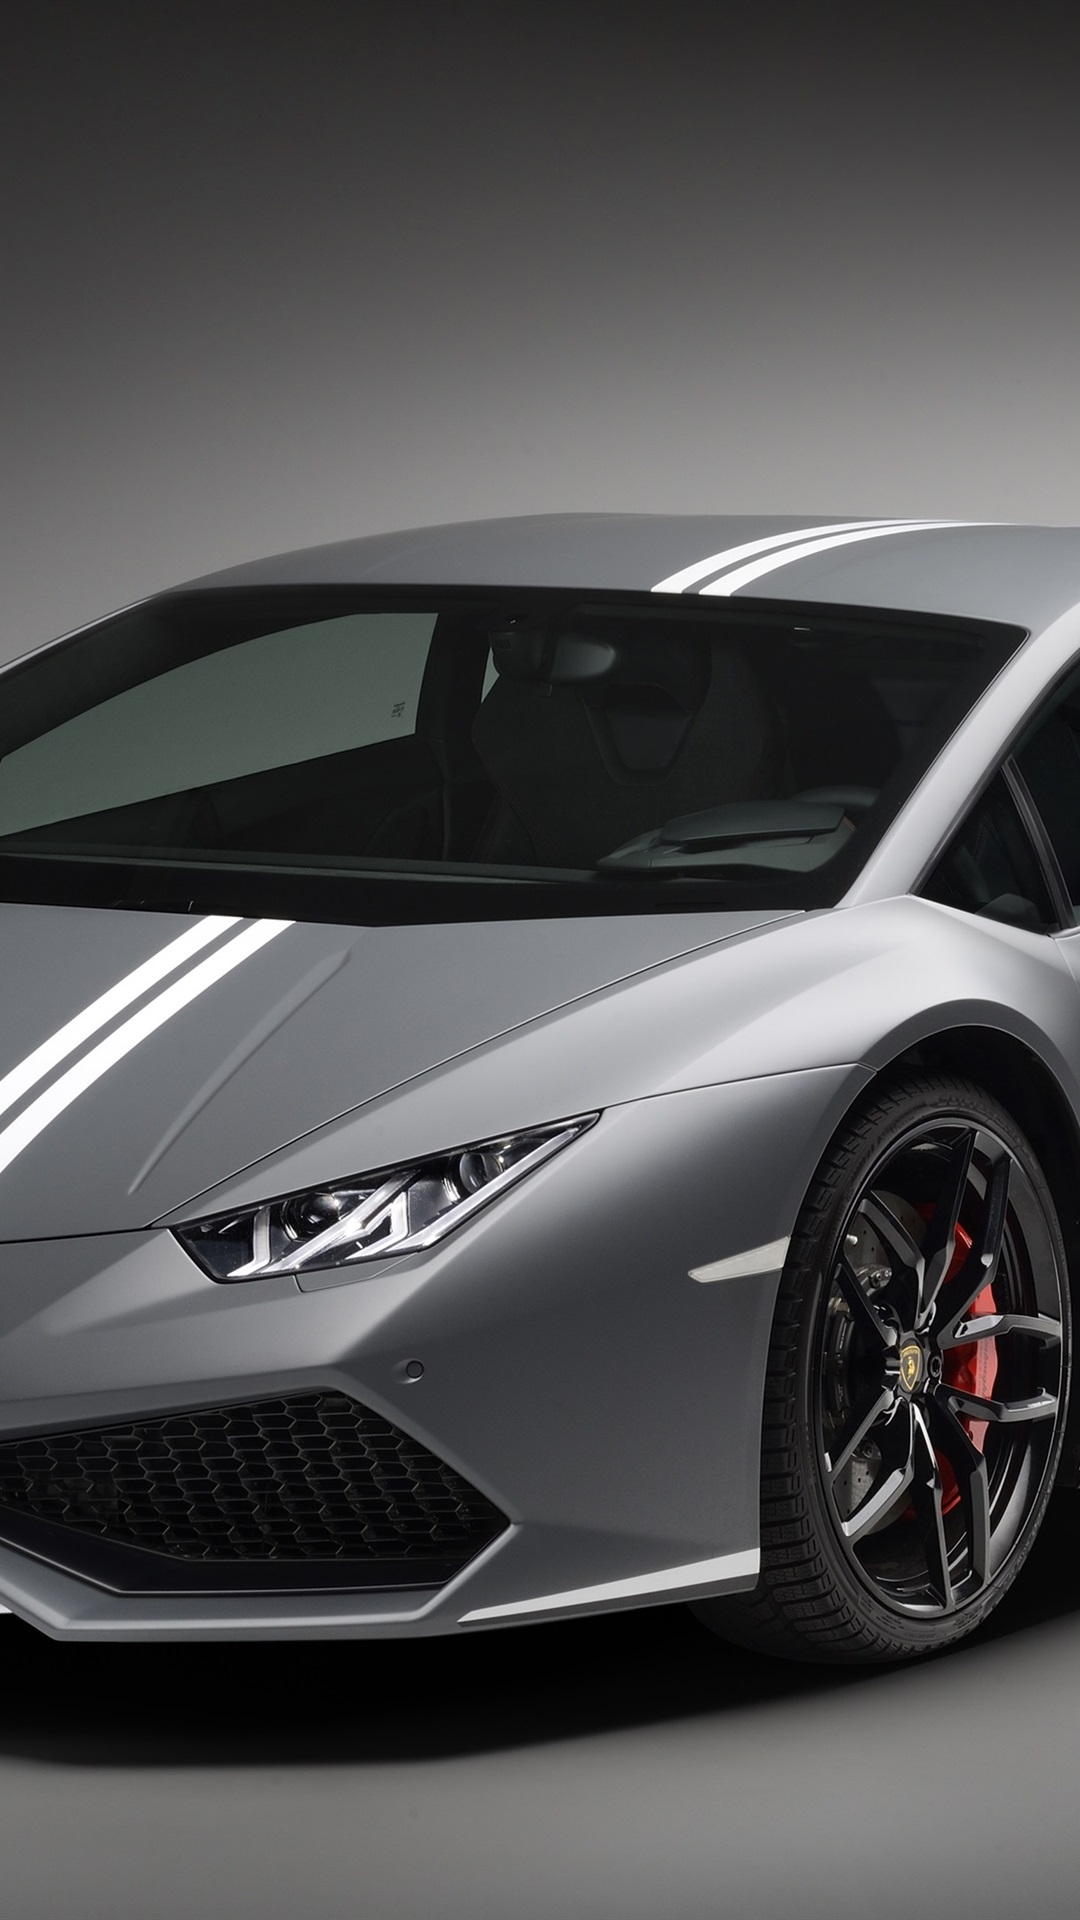 Lamborghini Huracan Lp 610 4 Gray Supercar 1080x1920 Iphone